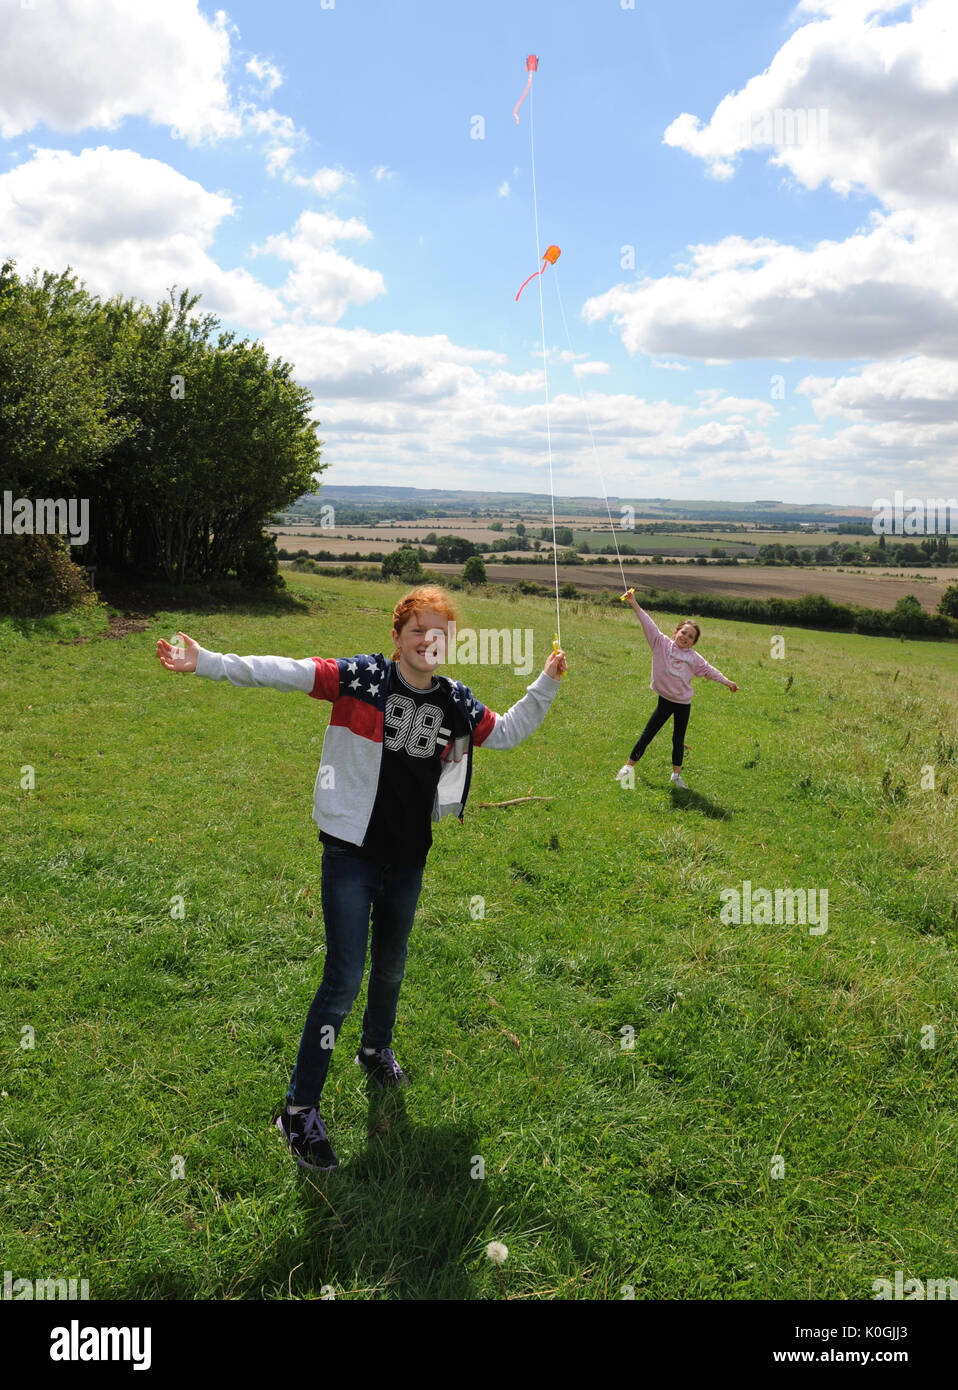 Flying Kites Stock Photos & Flying Kites Stock Images - Alamy